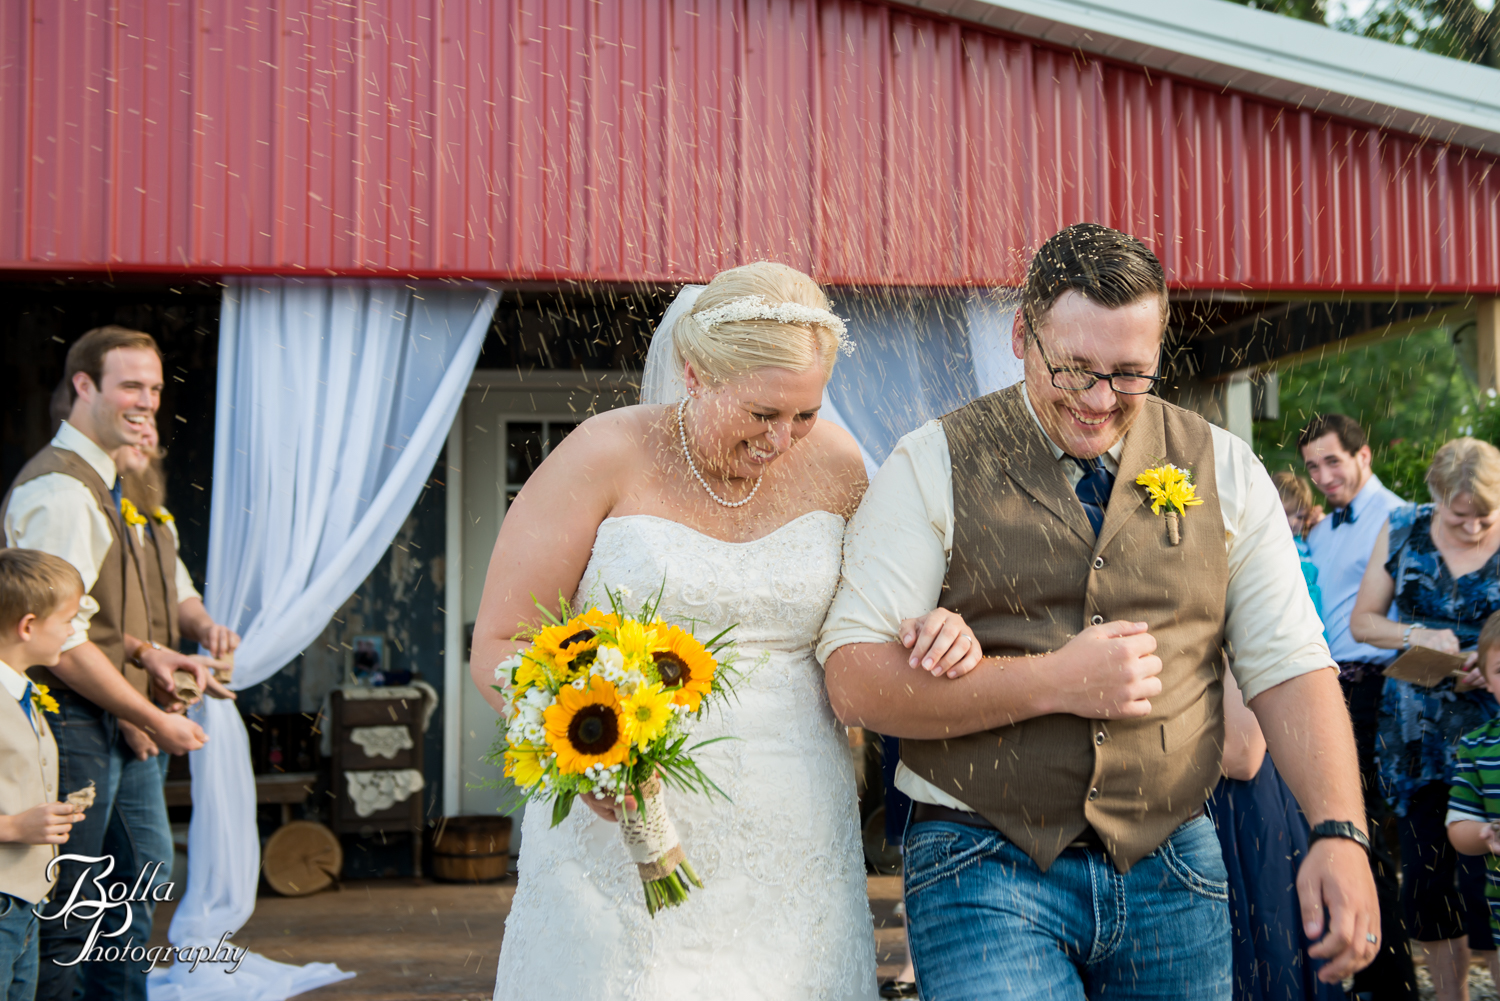 Bolla_Photography_St_Louis_wedding_photographer_Smith-40.jpg